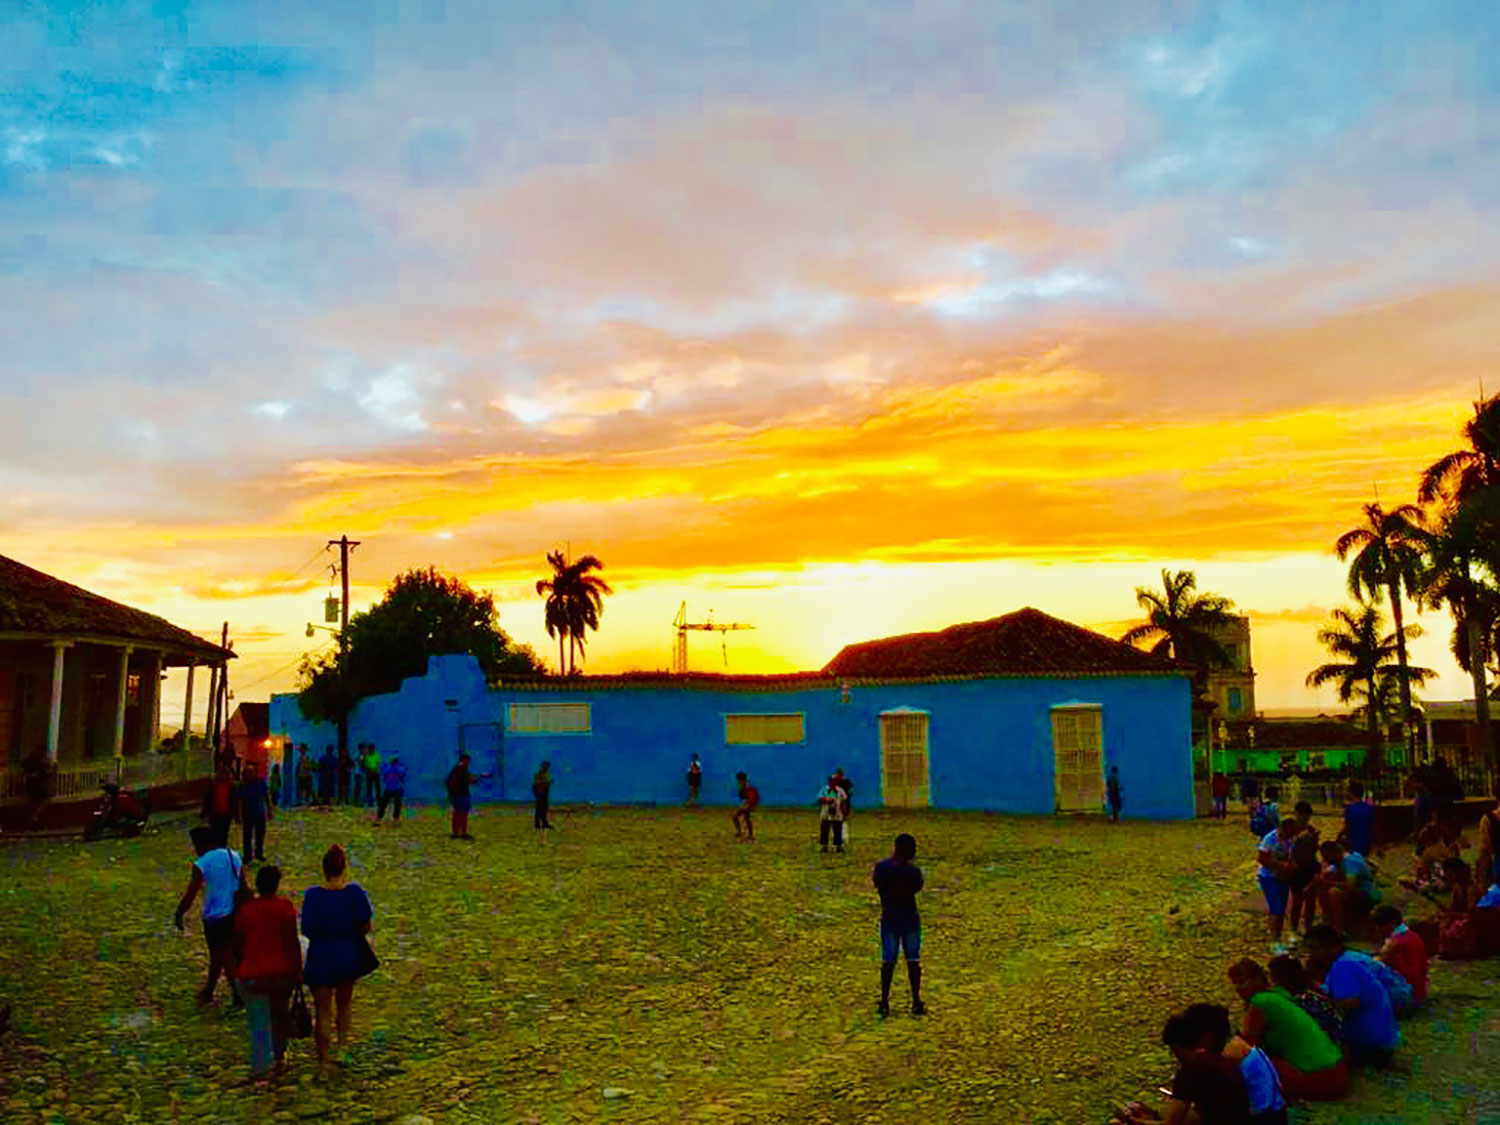 The sunset in Trinidad.